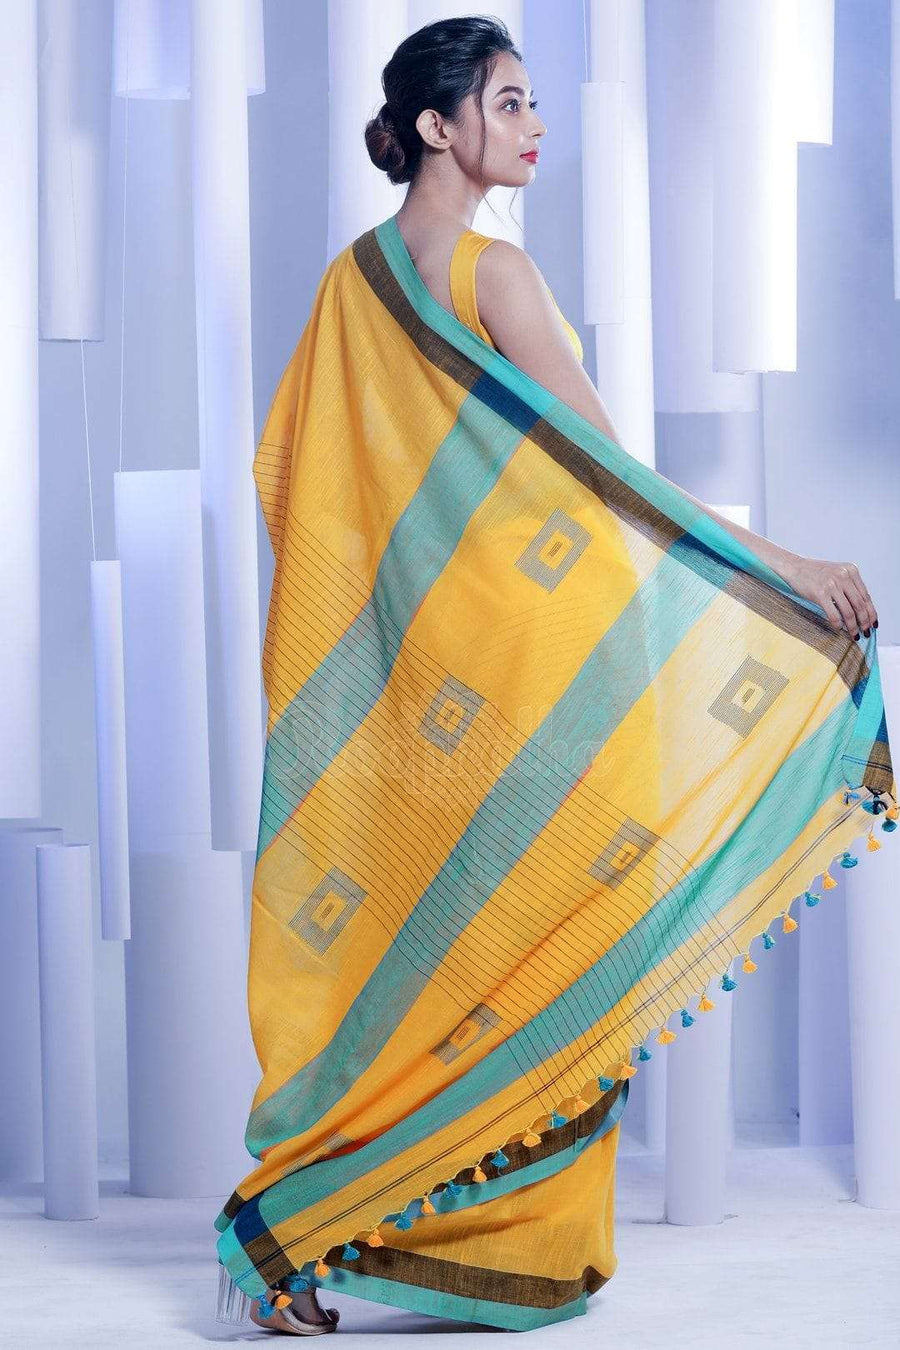 Sunset Yellow Pure Cotton Saree With Dual Border Cotton Threads Of India Roopkatha - A Story of Art